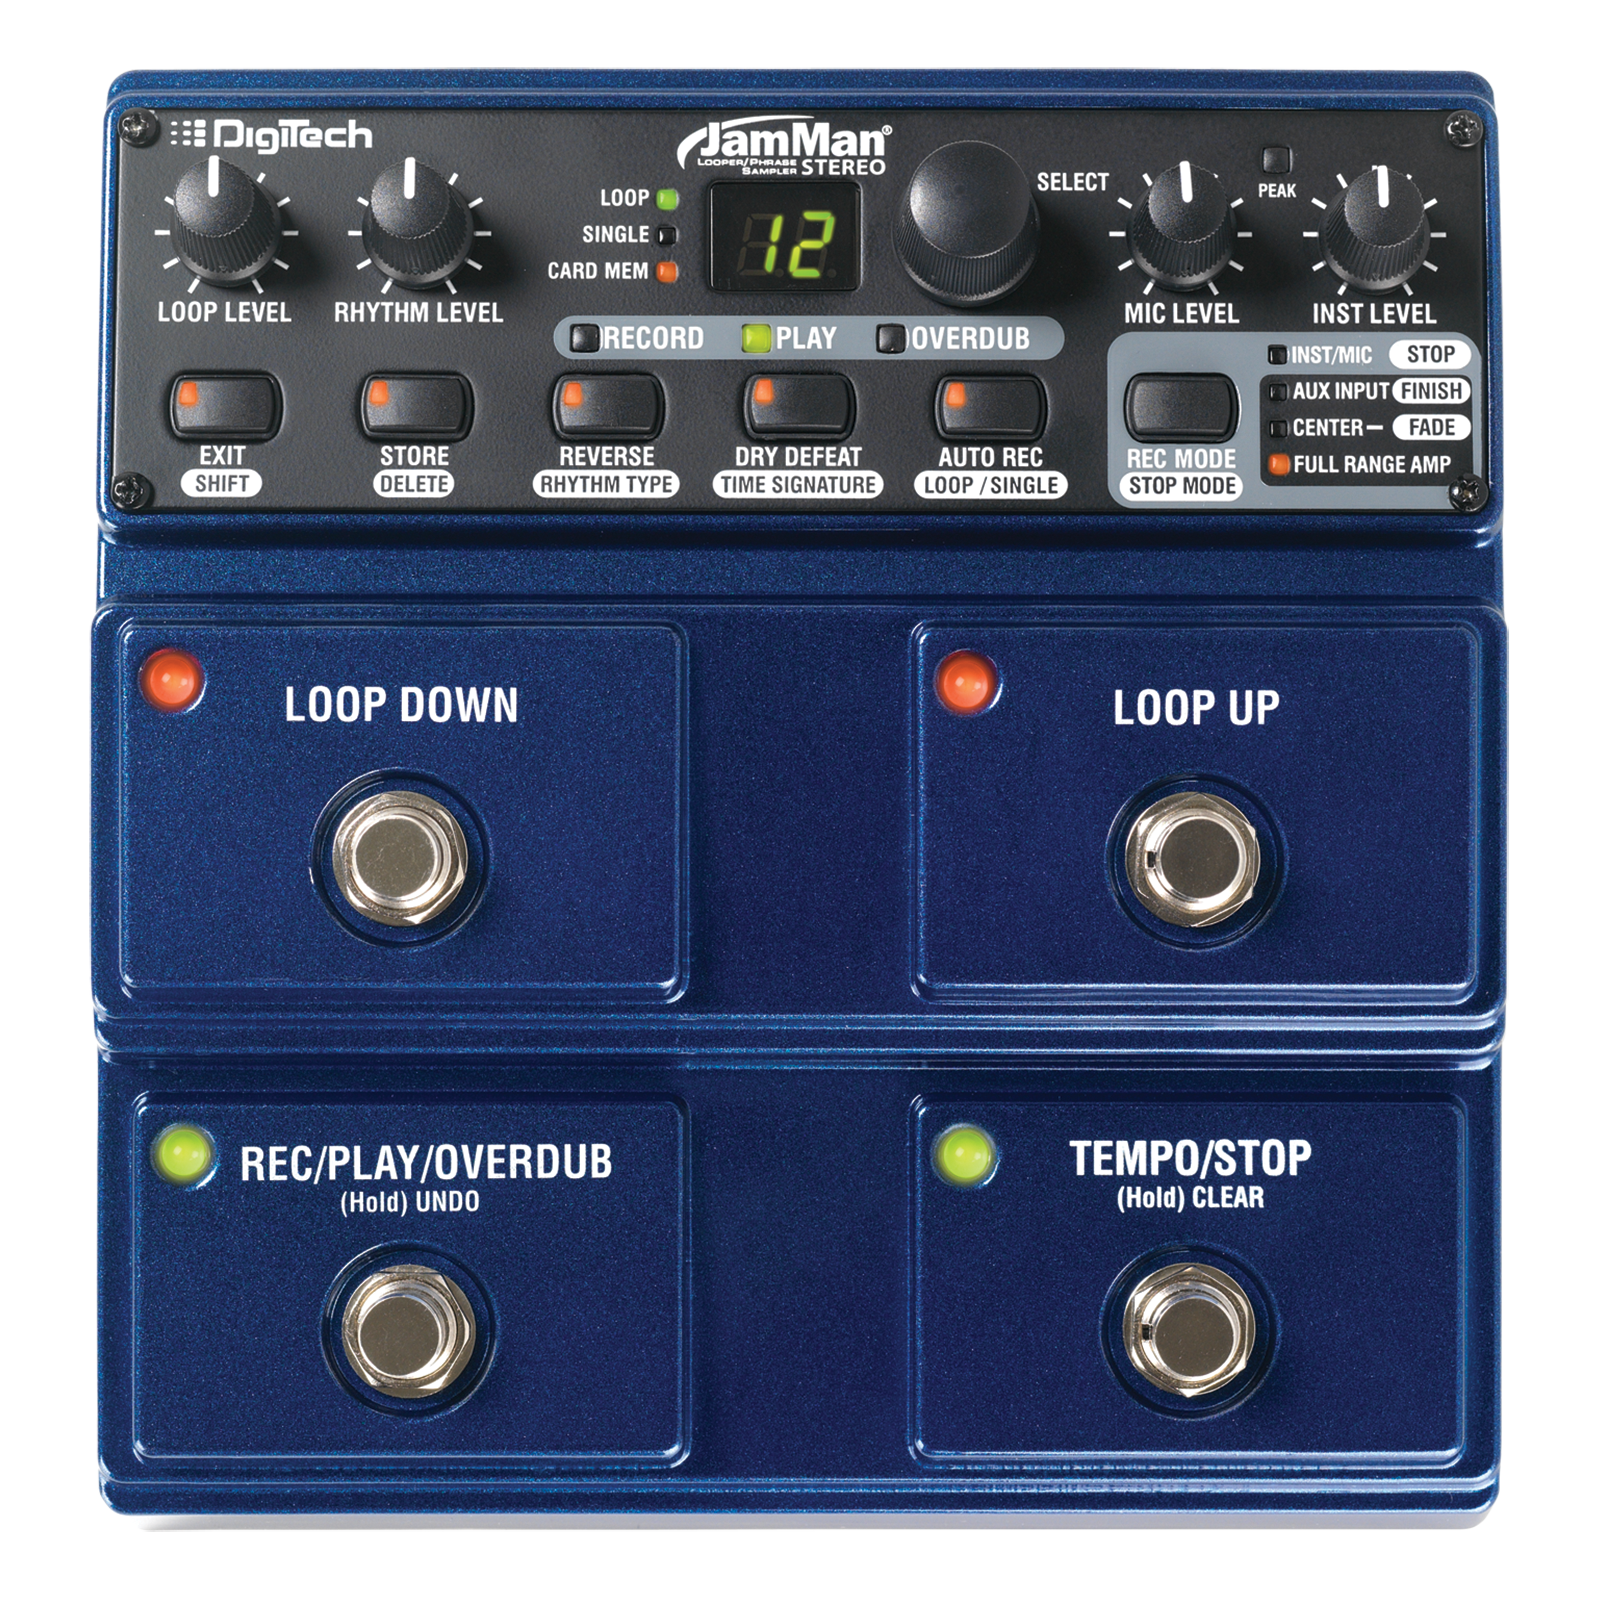 JamMan Stereo - Blue - Stereo Looping Pedal with 35 Minutes of Internal Recording Capacity, SDHC Card Expansion, and Included JamManager Loop Librarian Software - Front